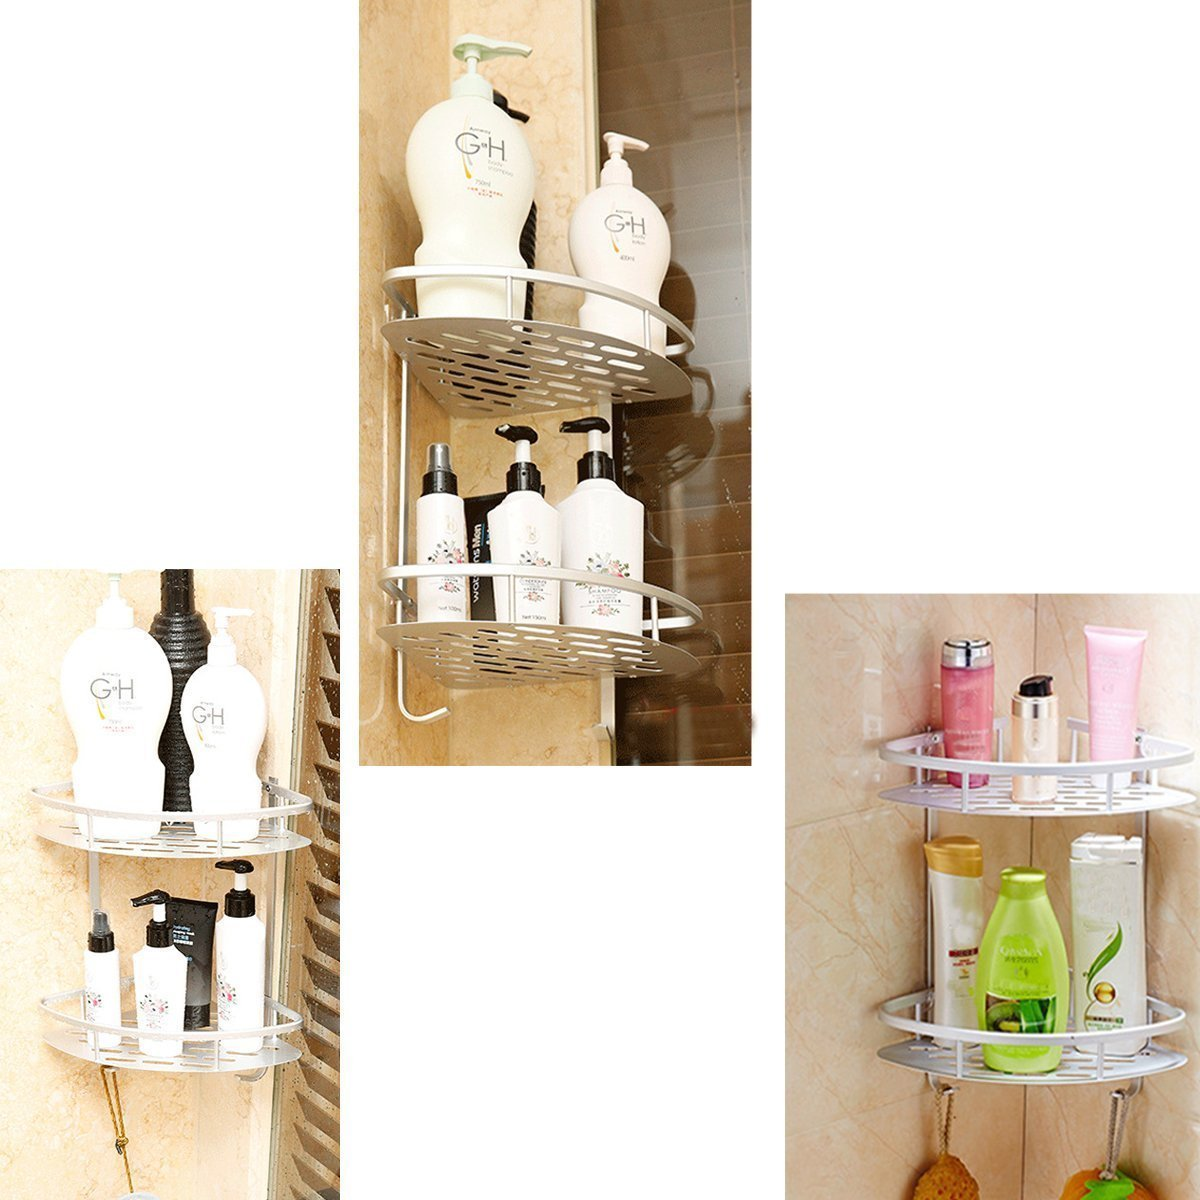 Lancher Bathroom Shelf-Storage, Organize, Shower-Caddy, Basket, Kitchen, Tools